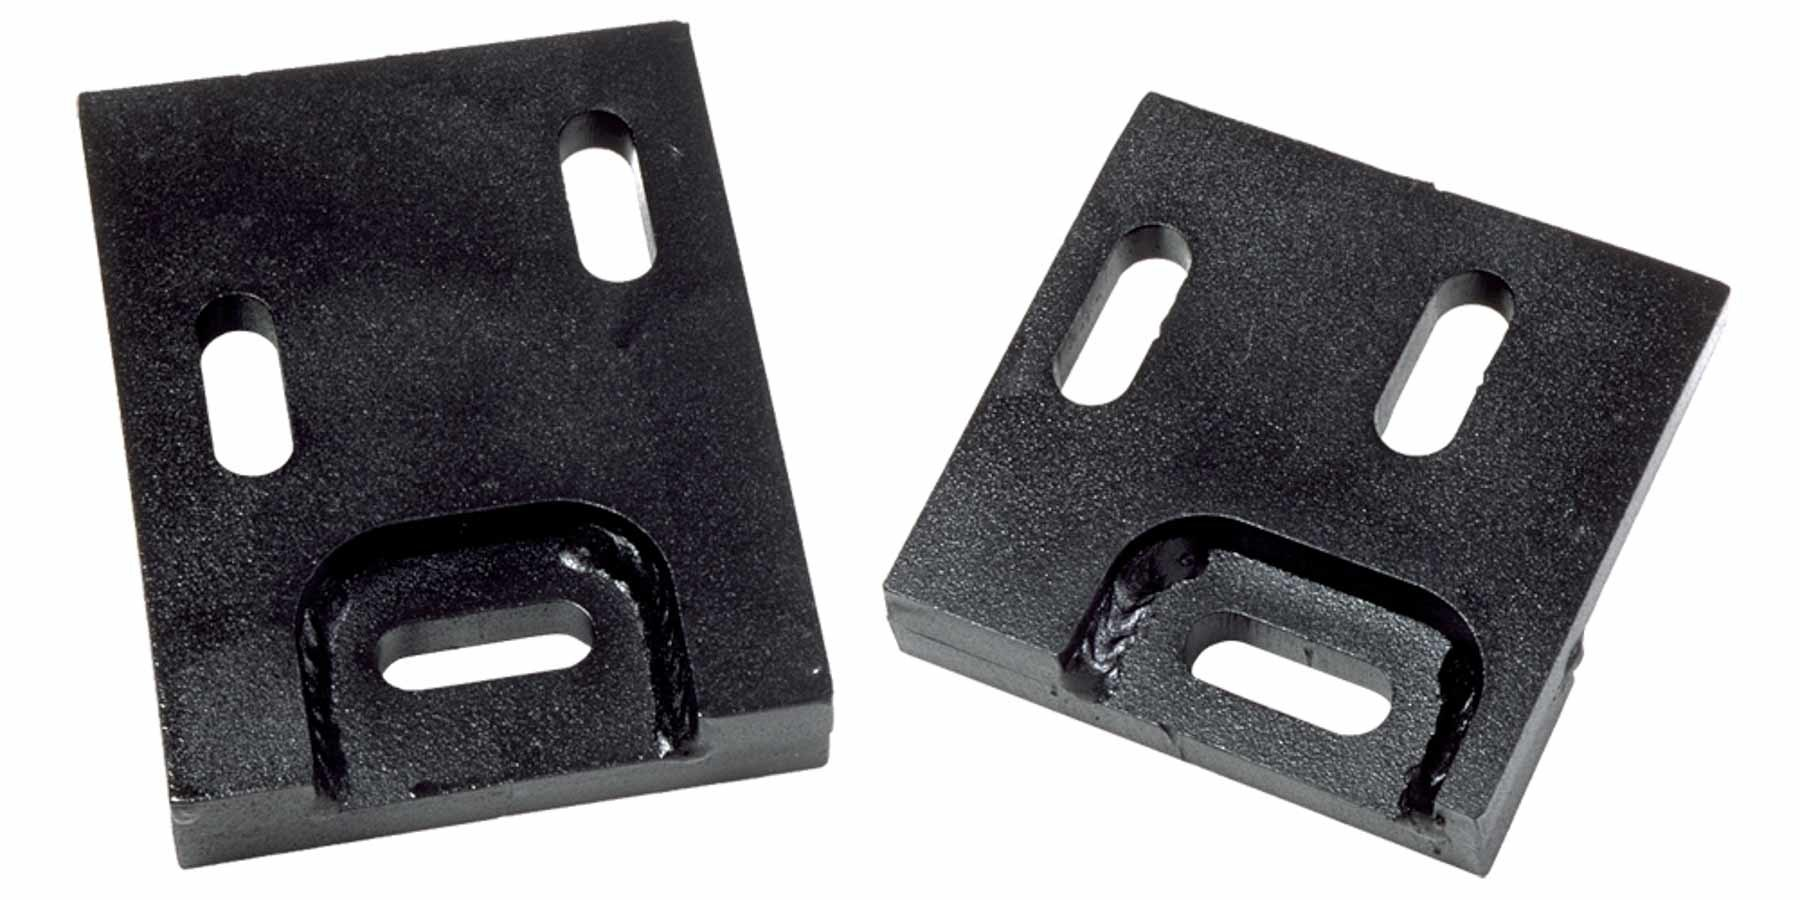 Trans Dapt 9716 Motor Mount, Bolt-On, Steel, Ford Ranger 2WD to Small Block Ford, Pair